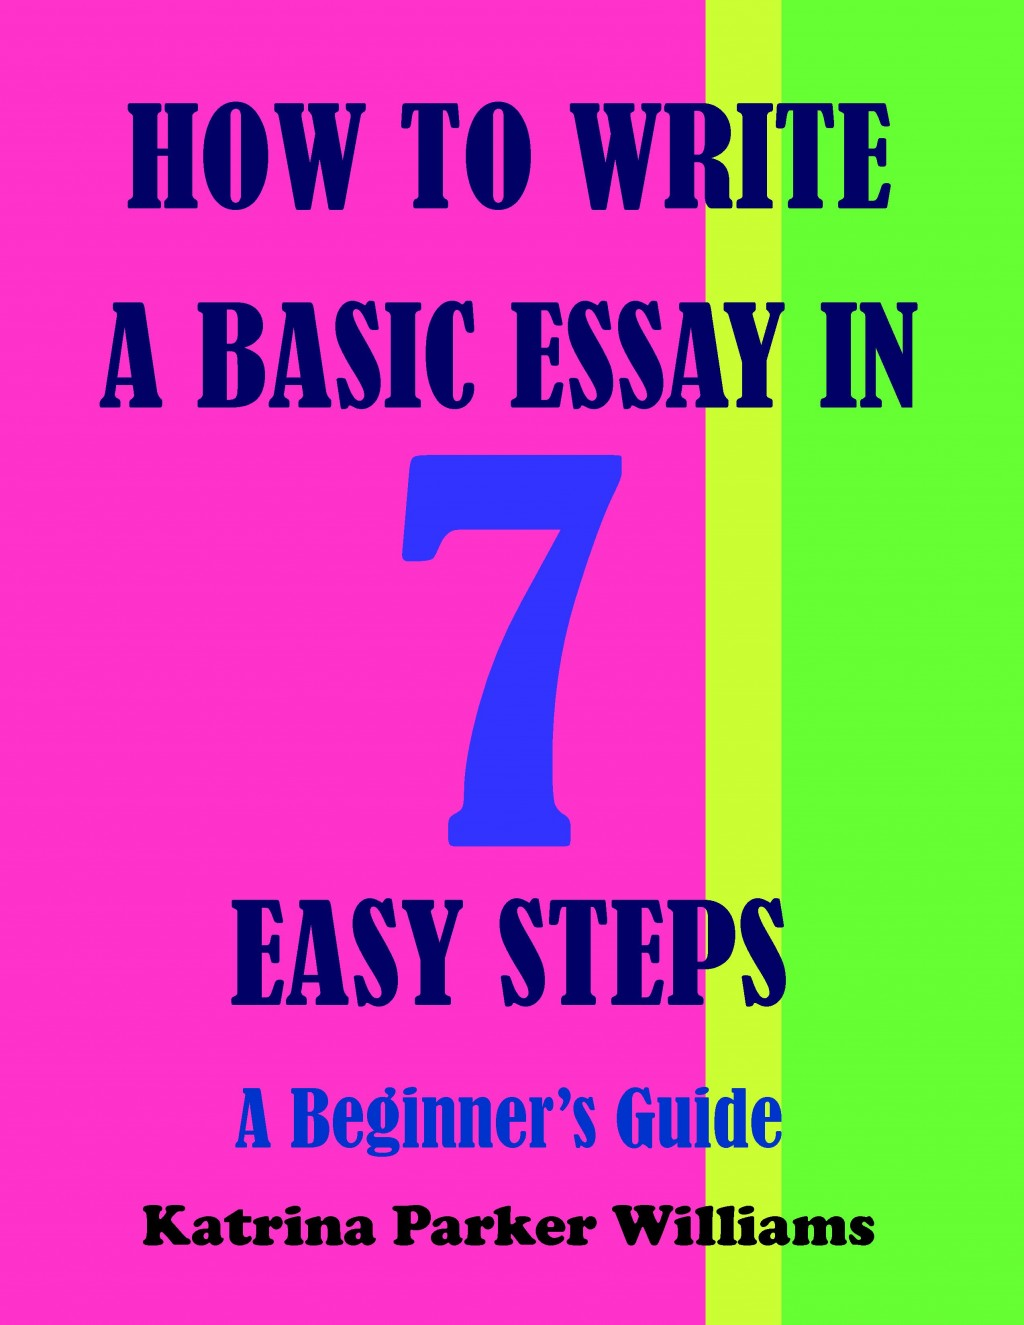 011 Essay Example How To Write Basic In Seven Easy Steps Staggering An Telugu Mla Format Pdf Large